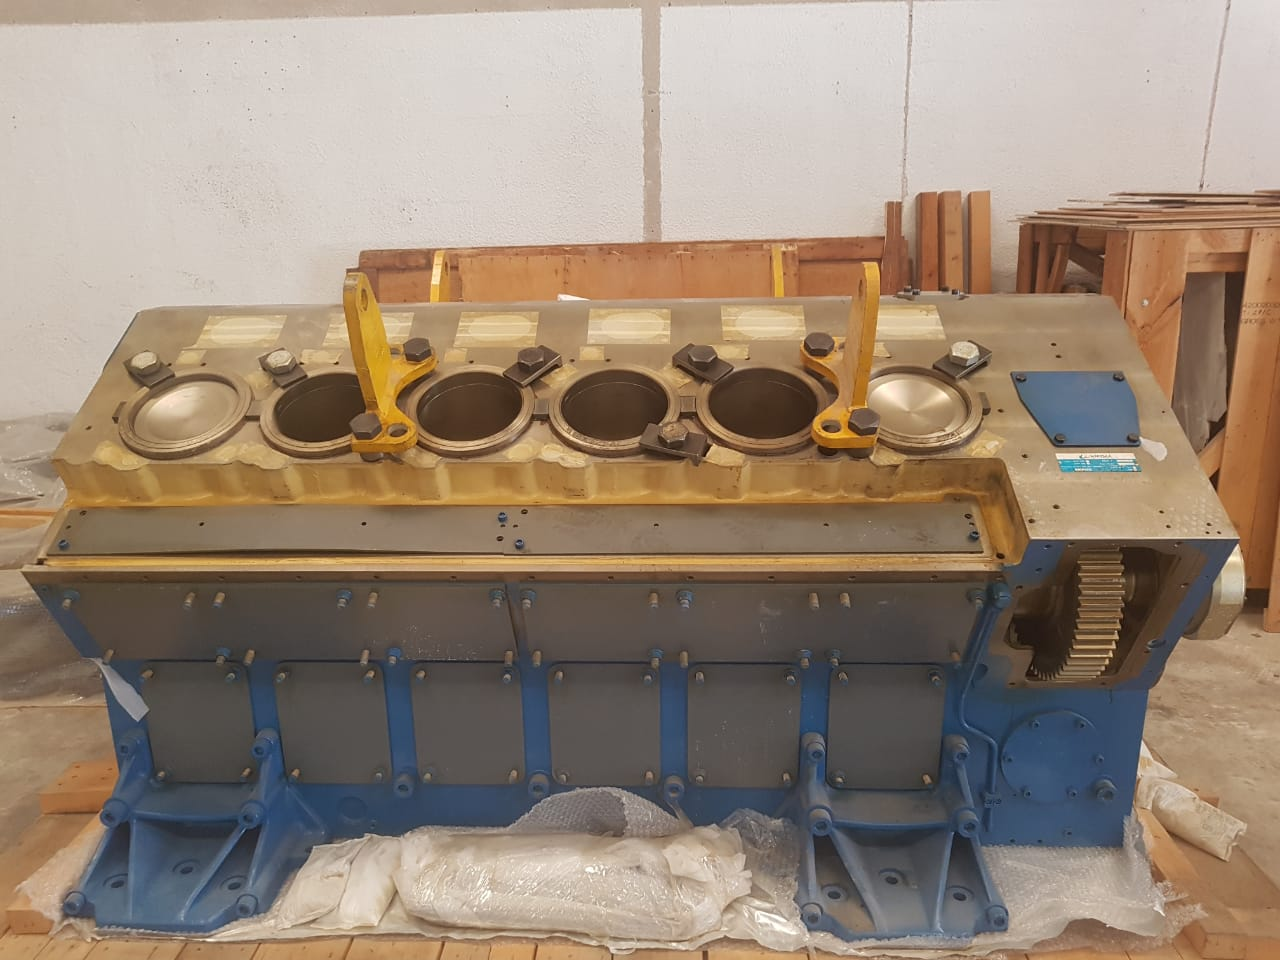 Featured Engine: Wartsila V220 2200KW gas/diesel engine unused 2009 build for sale